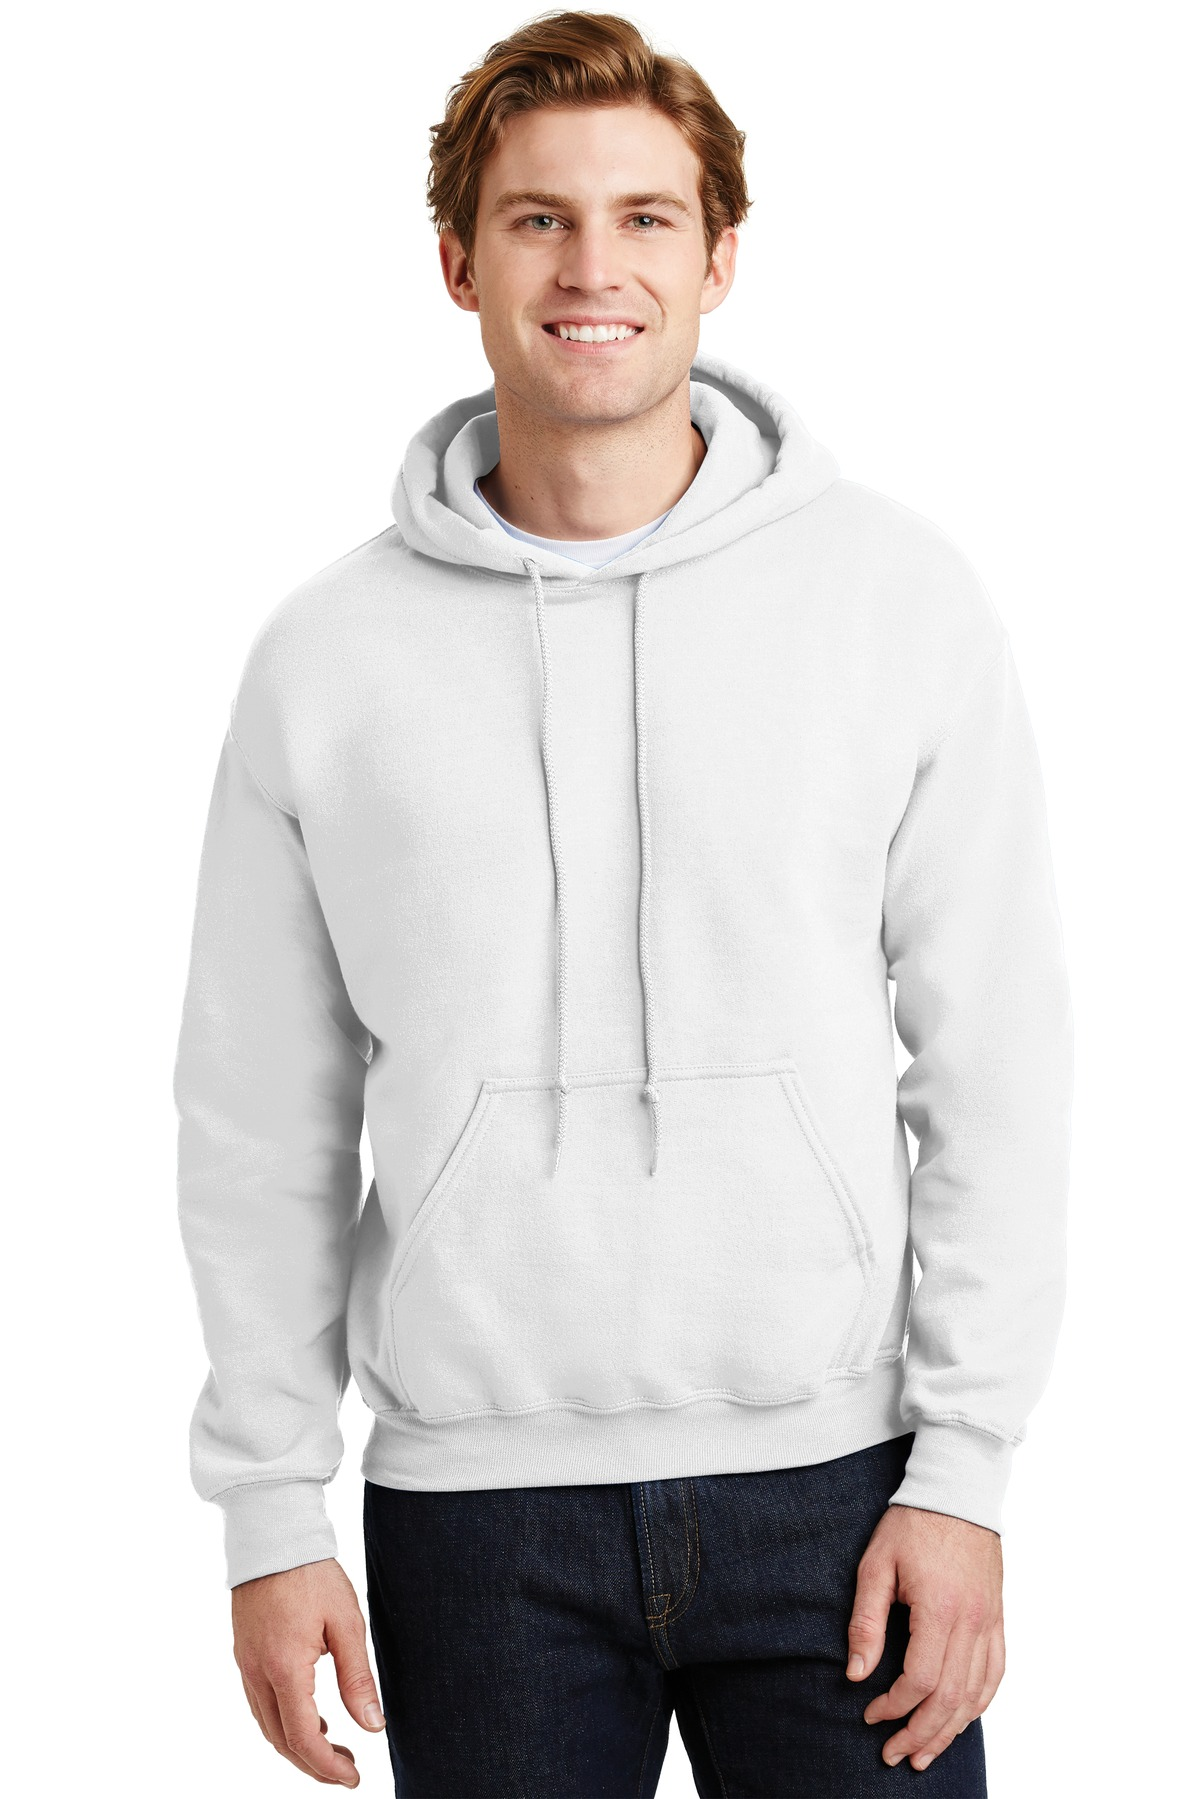 Gildan ®  - Heavy Blend ™  Hooded Sweatshirt.  18500 - White